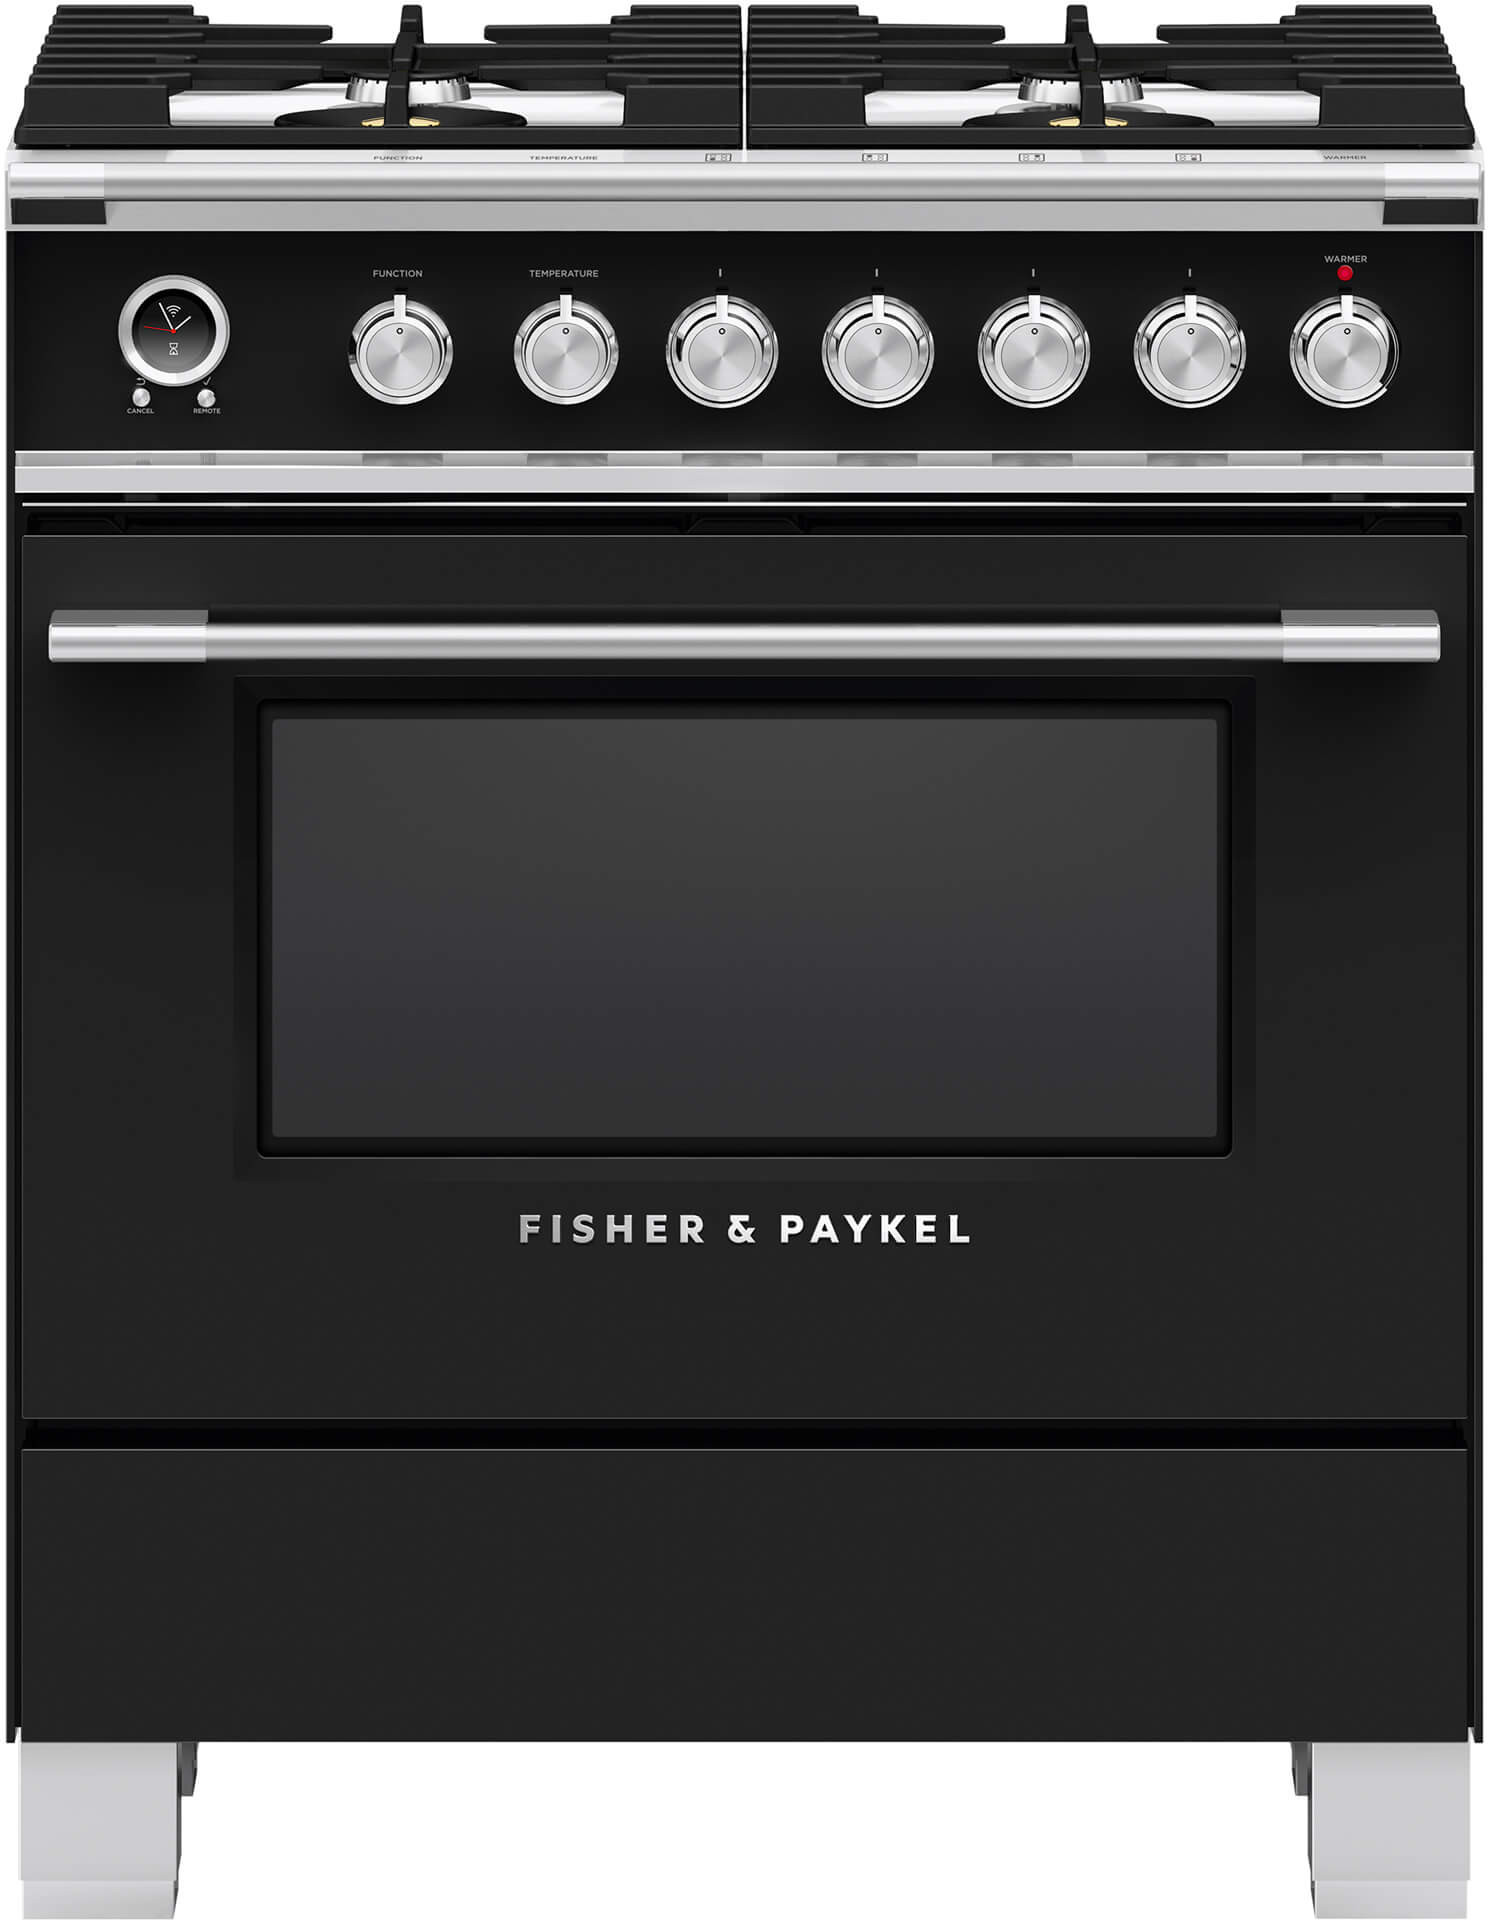 Fisher Paykel Clic Series Or30scg6b1